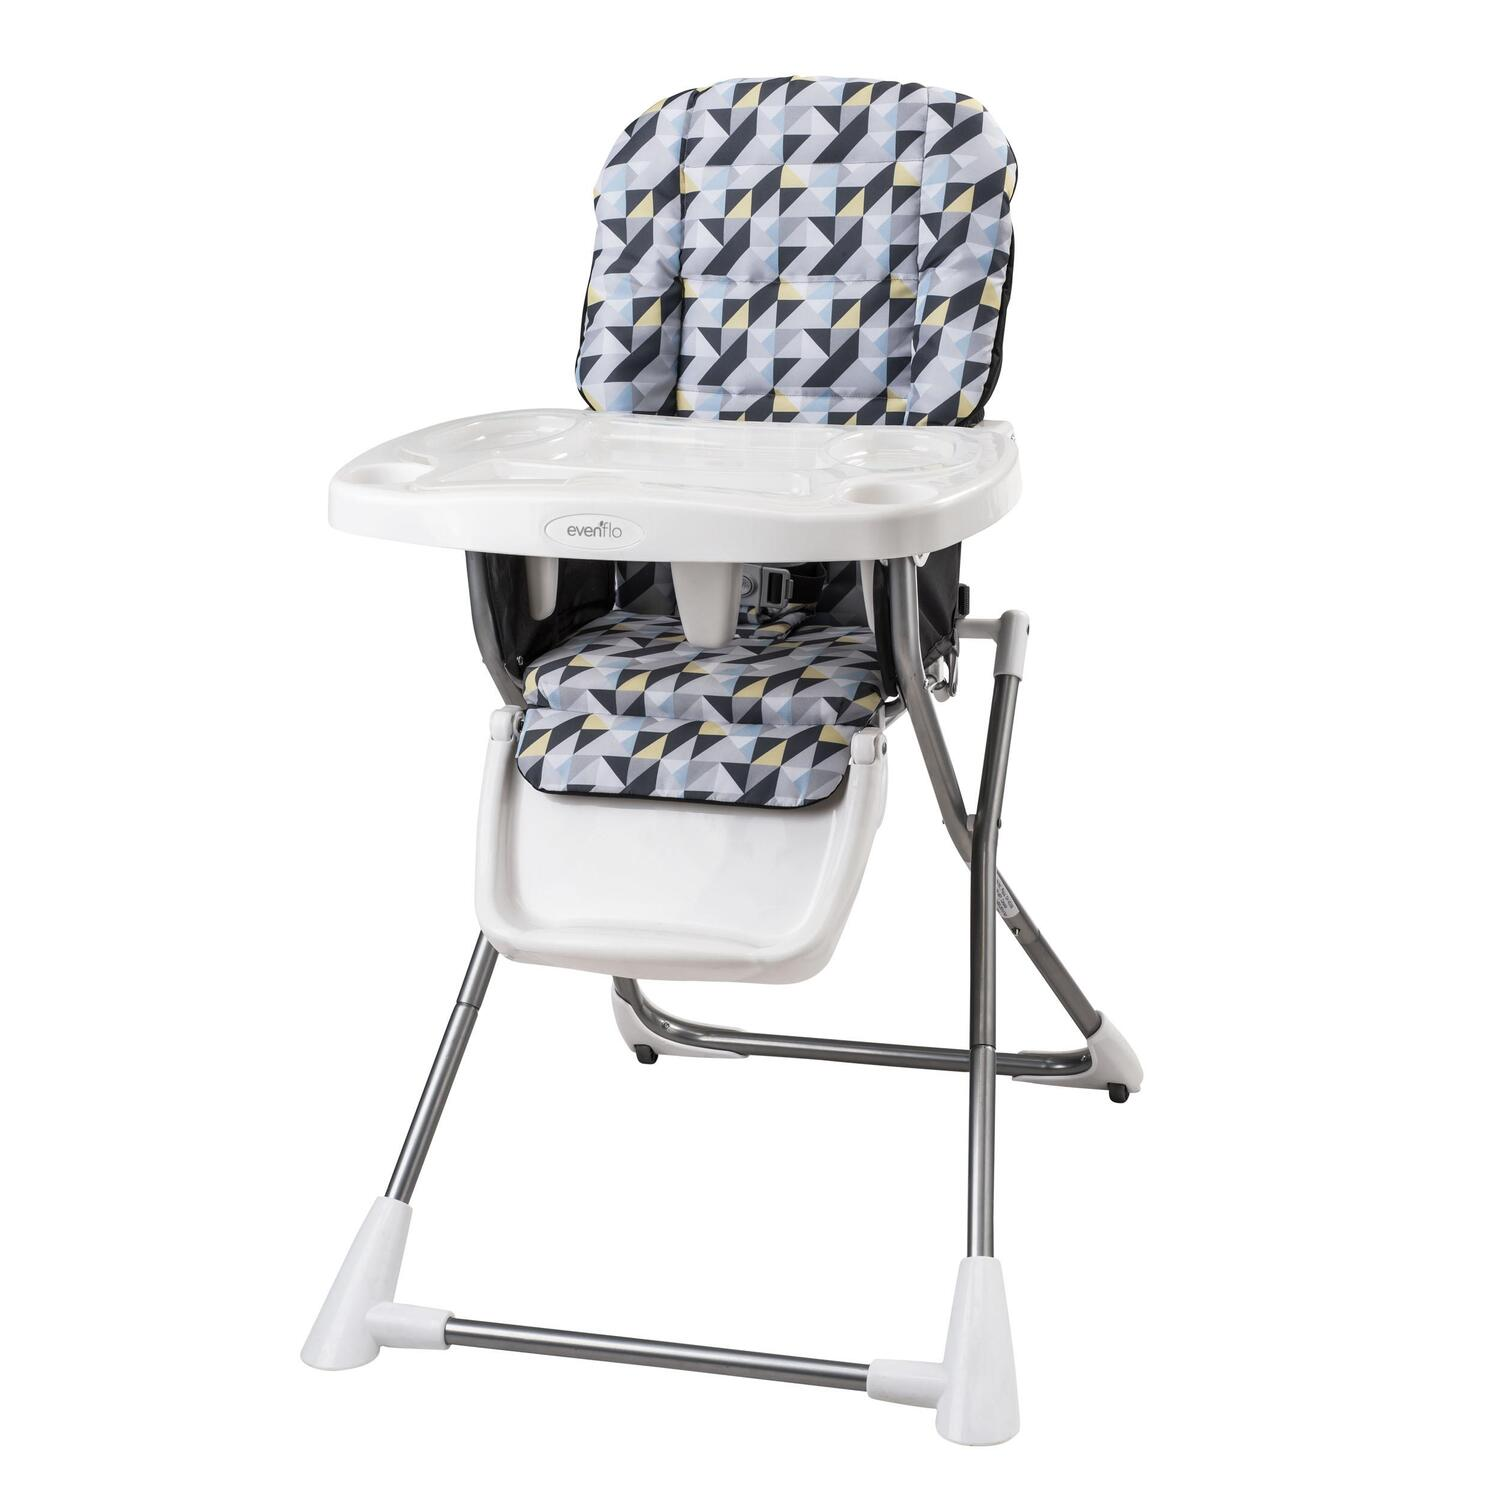 Evenflo compact fold high chair by oj commerce for Chaise haute graco